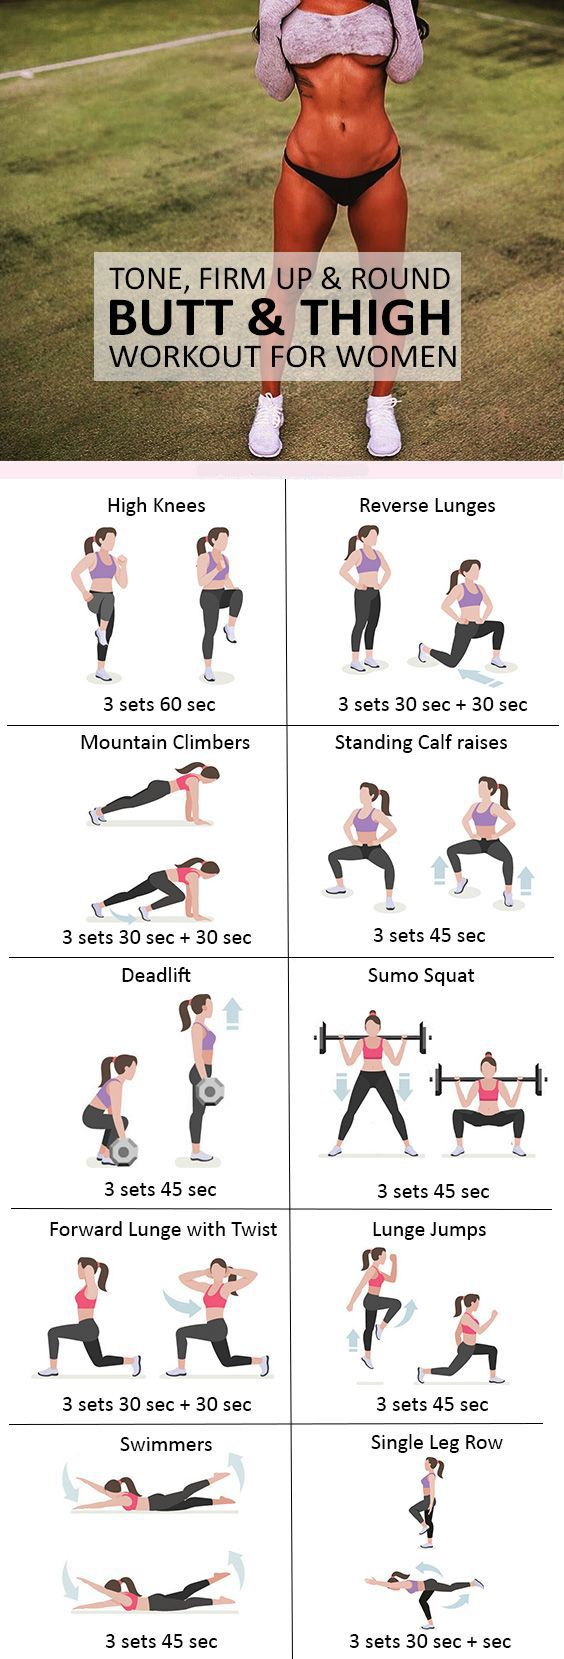 Butt & Thighs Workout For Women #weightloss #loseweight #weightlossworkout #buttworkout #thighsworkout #workout #Fitness #exercise